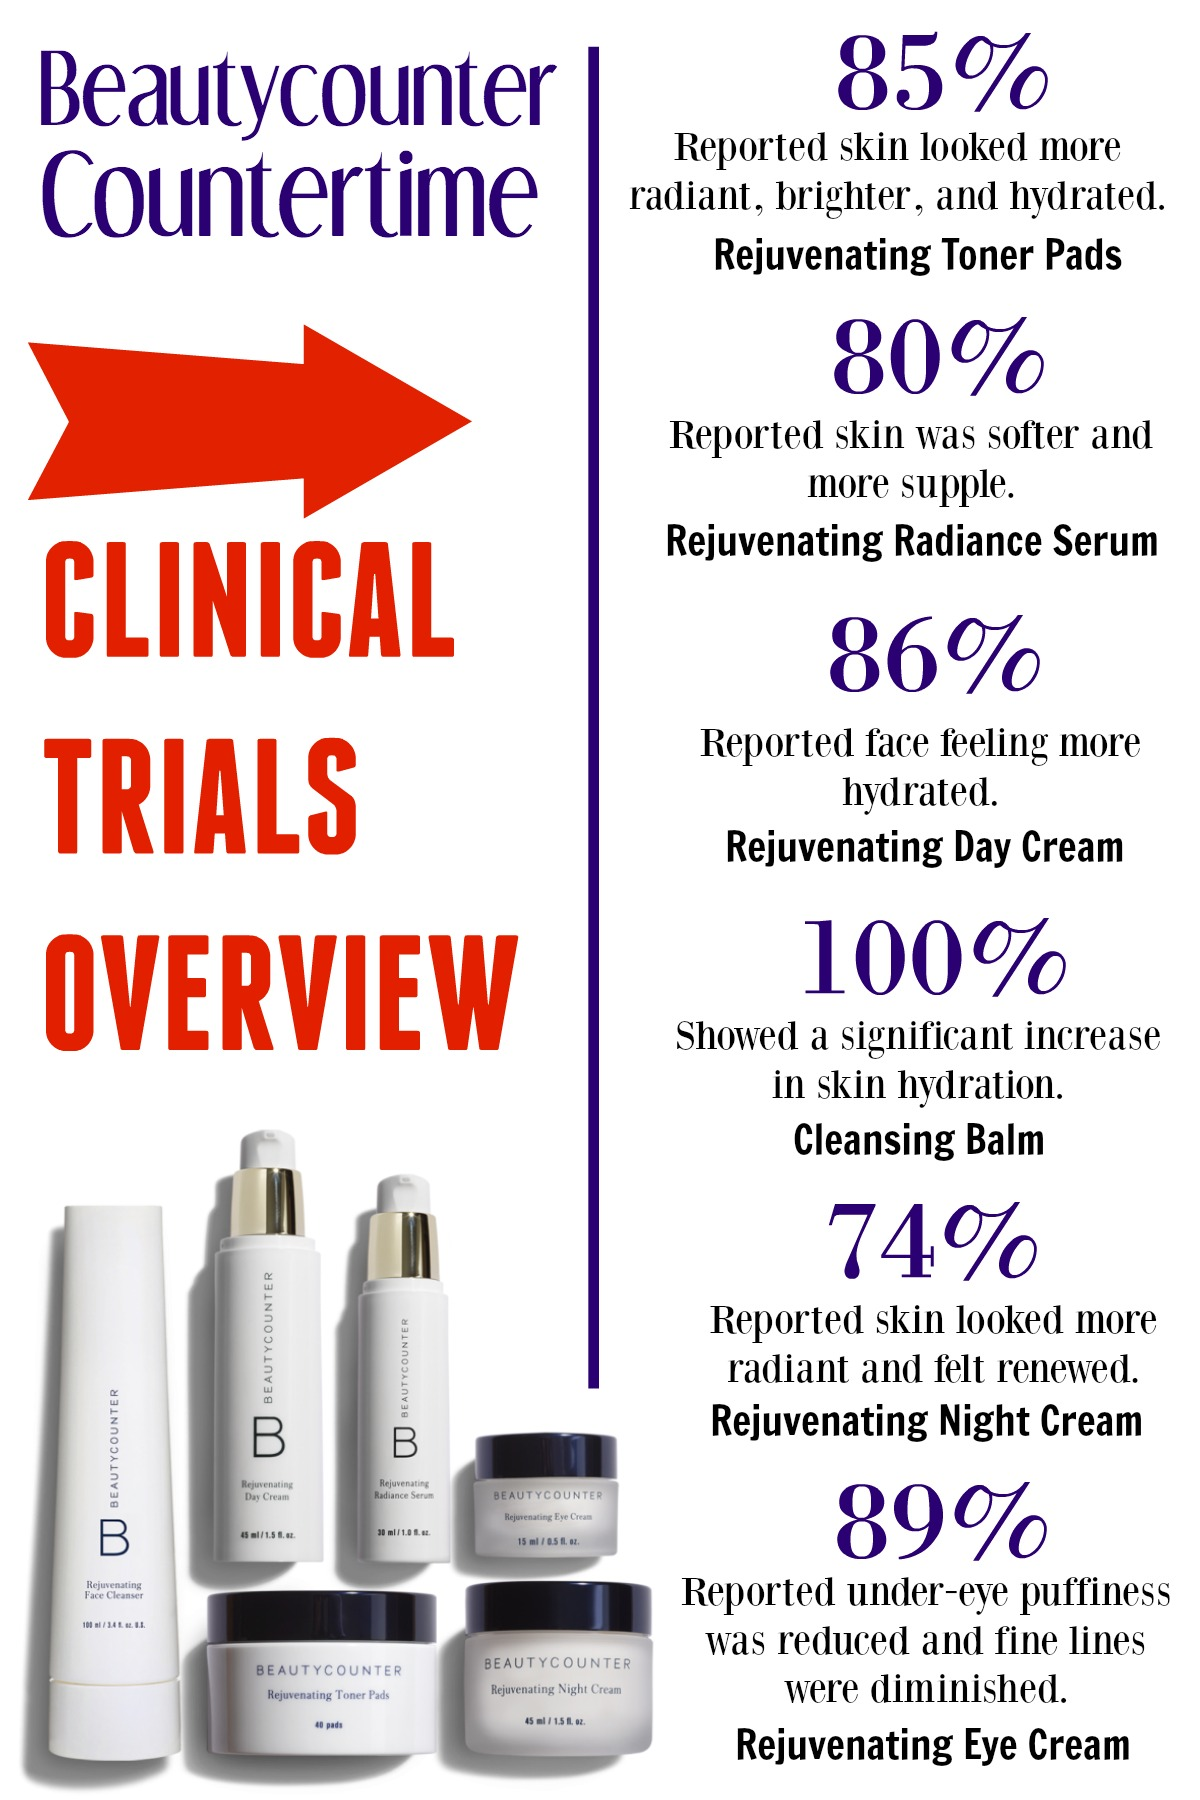 bc-beautycounter-countertime-clinical-trials-graphic